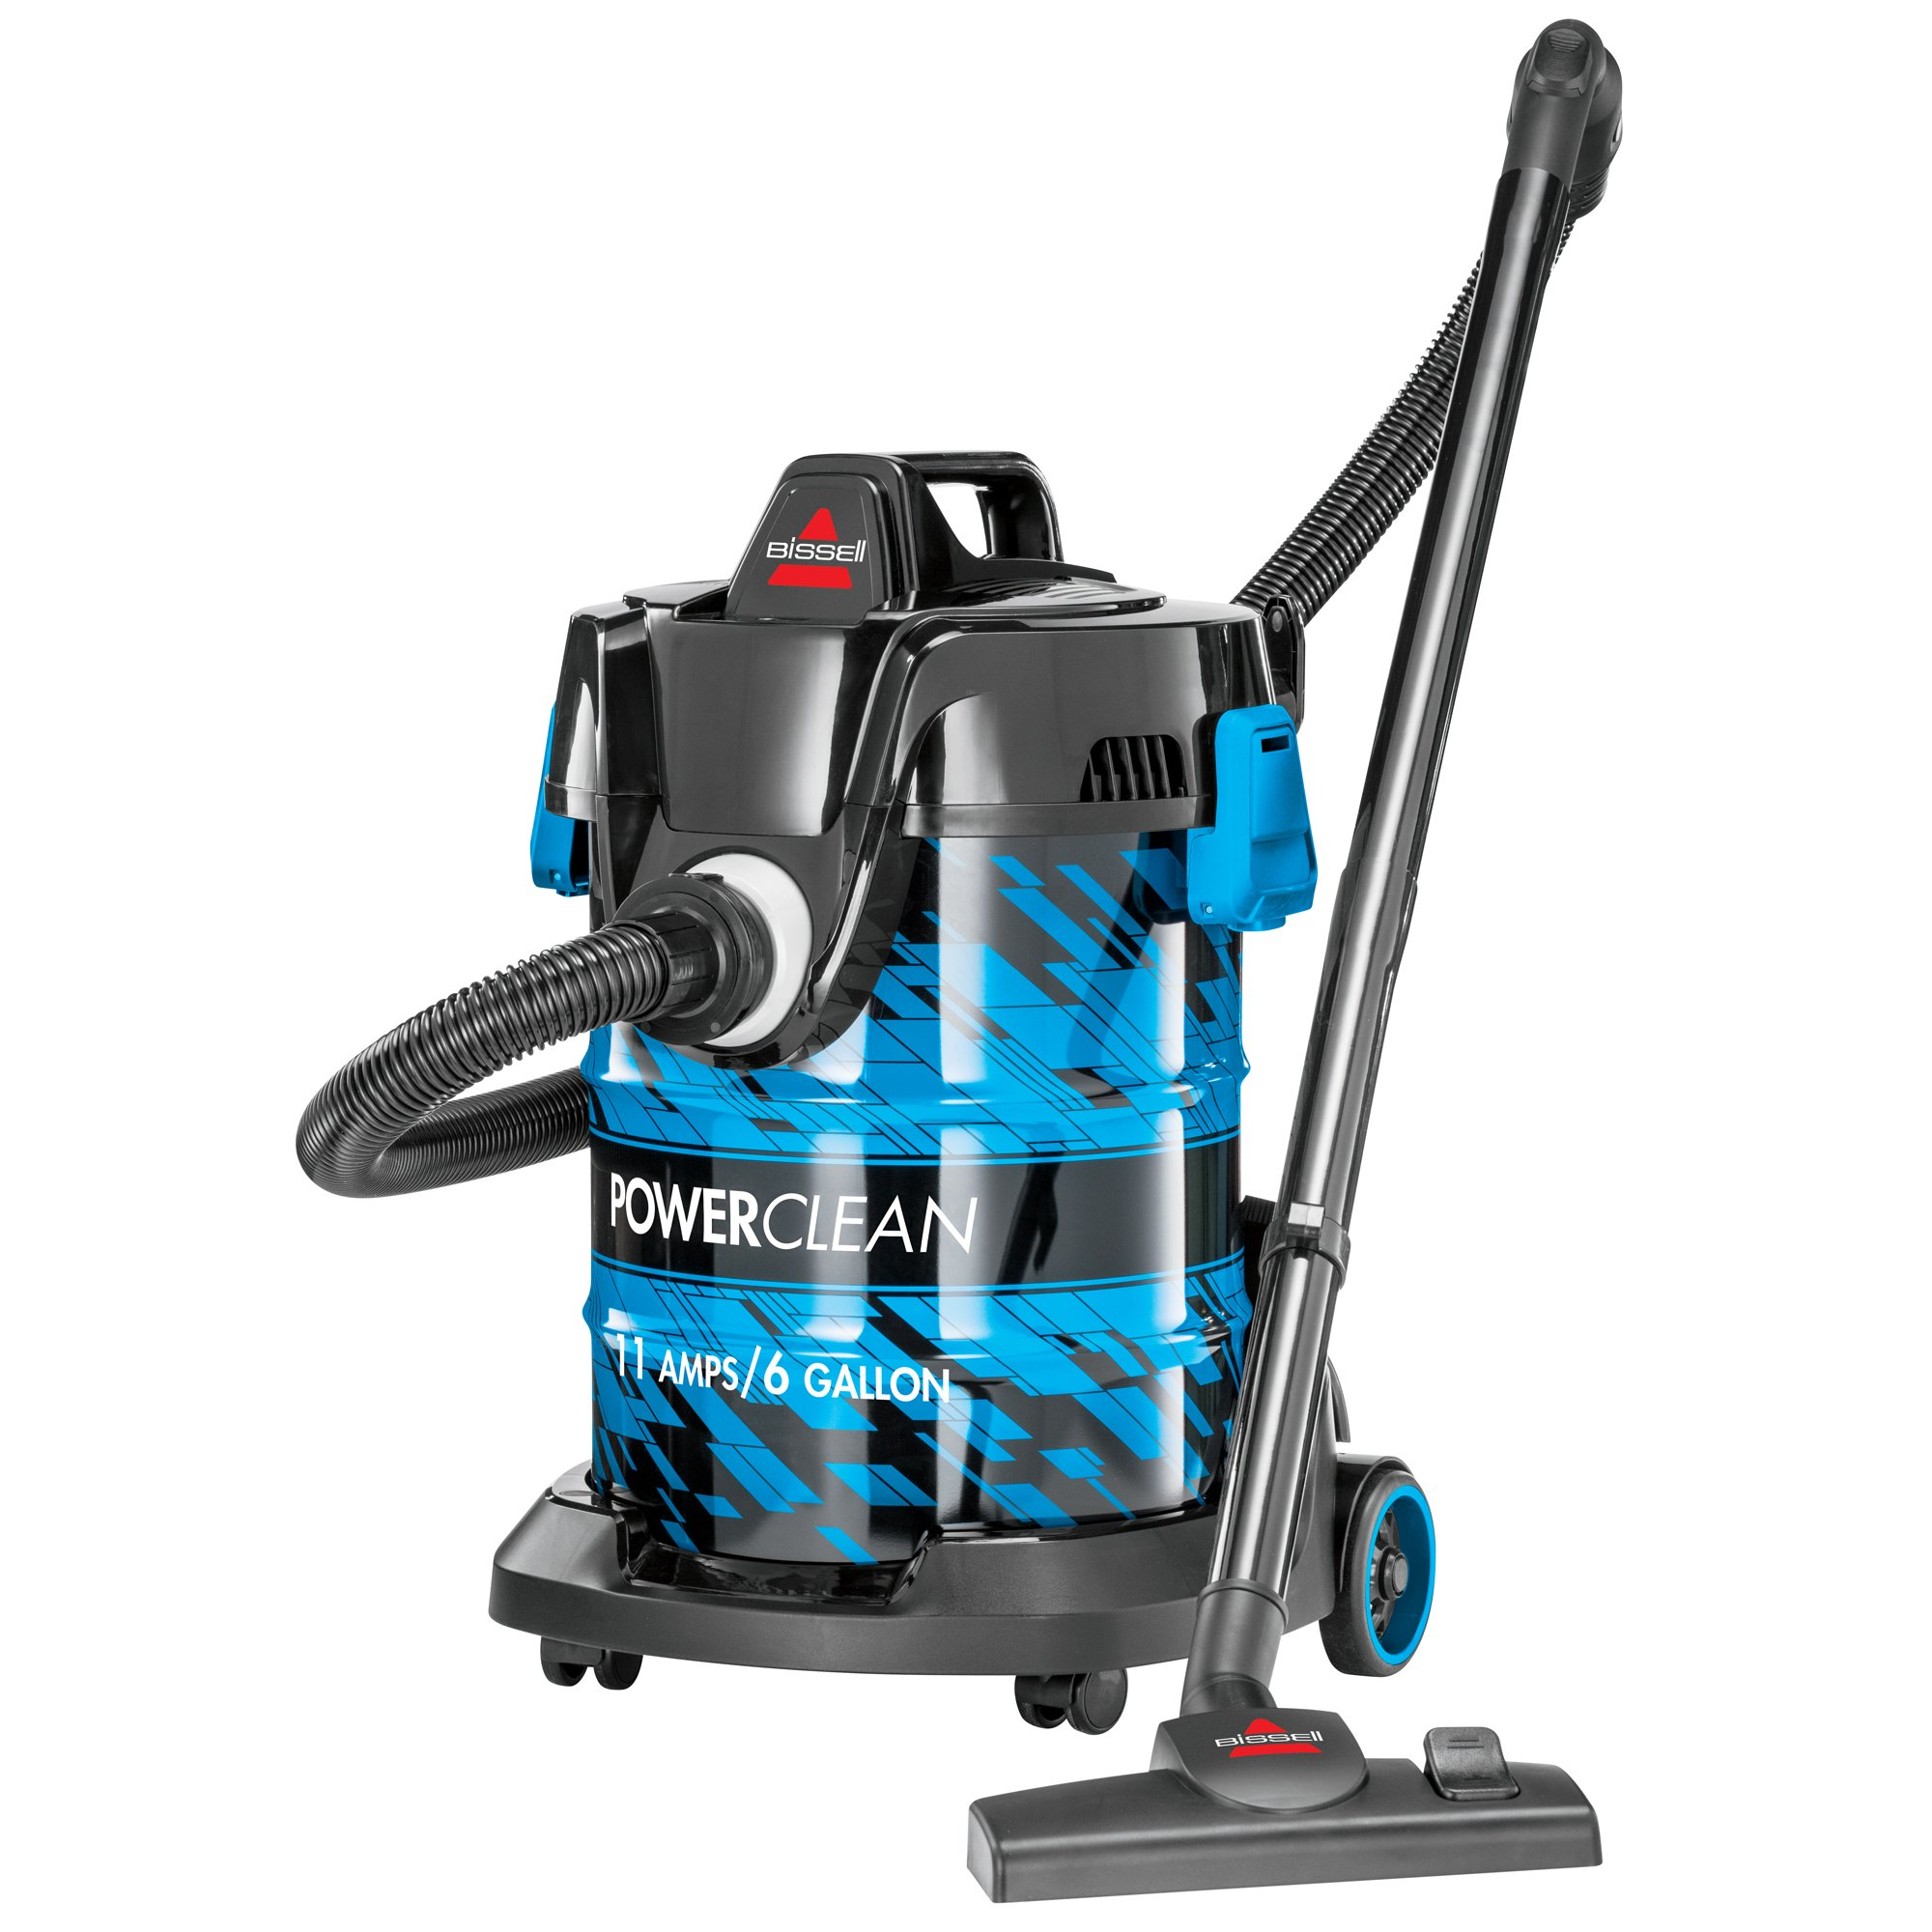 Bissell PowerClean Wet/Dry Shop Vacuum Cleaner, 2035A, Blue